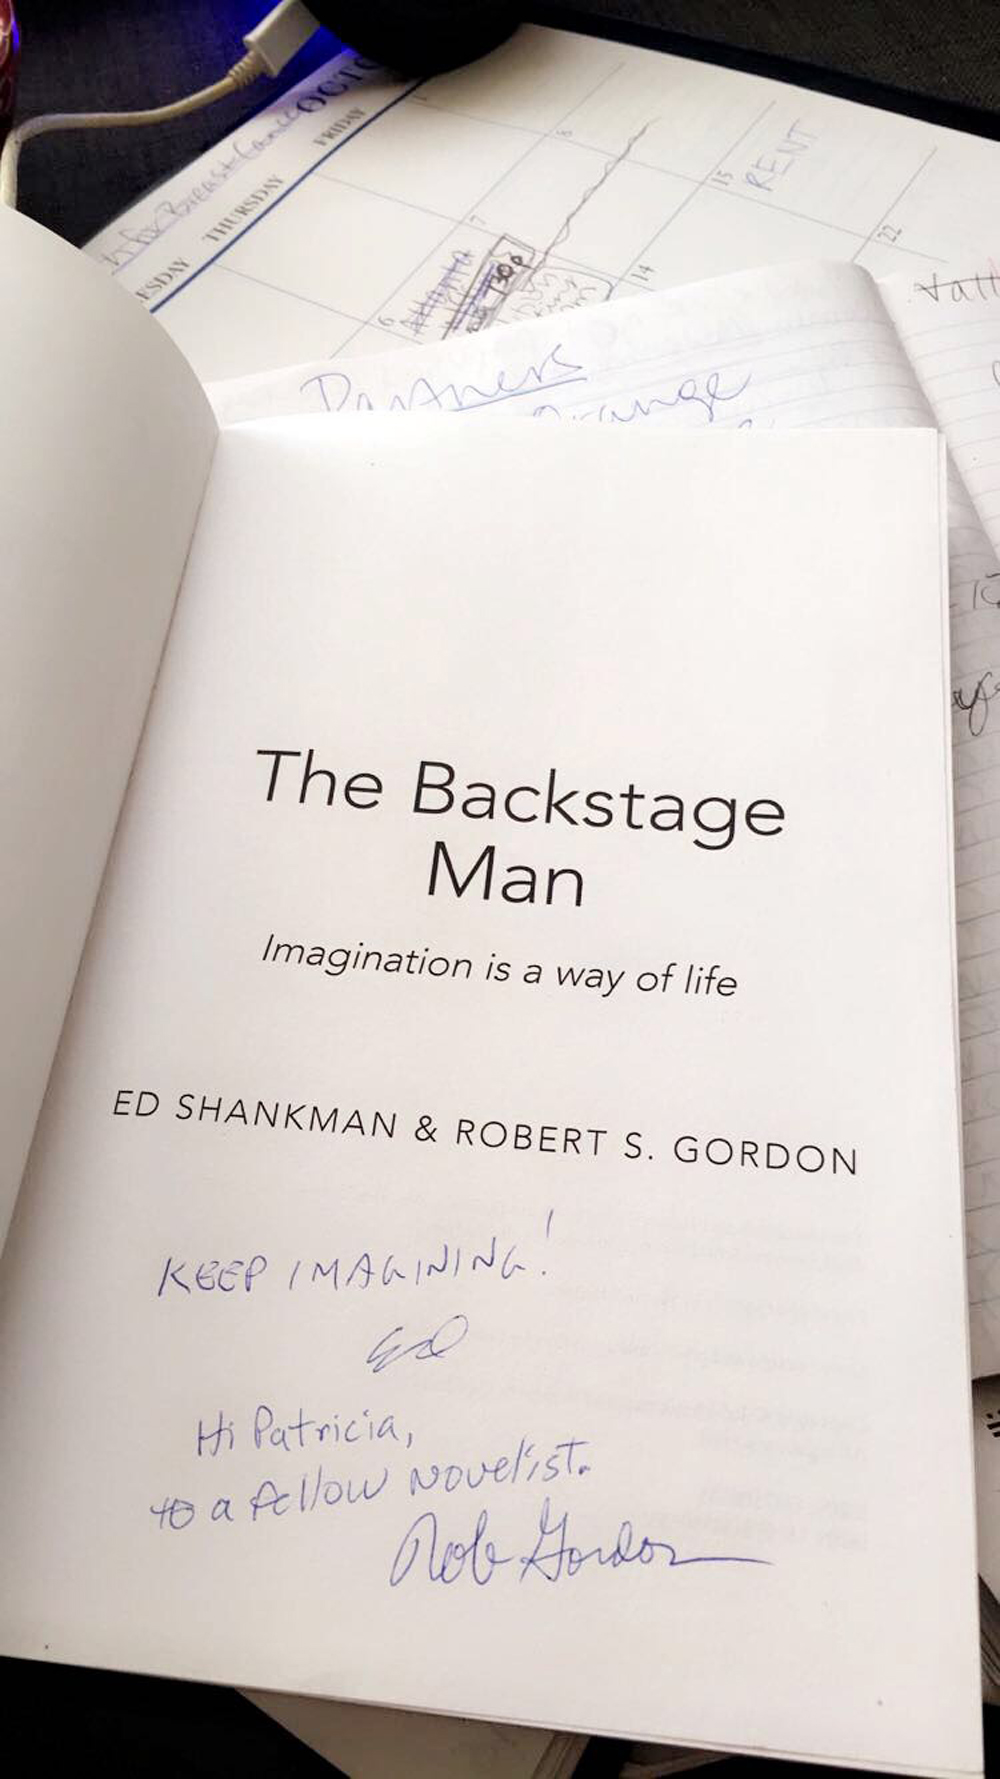 The Backstage Man